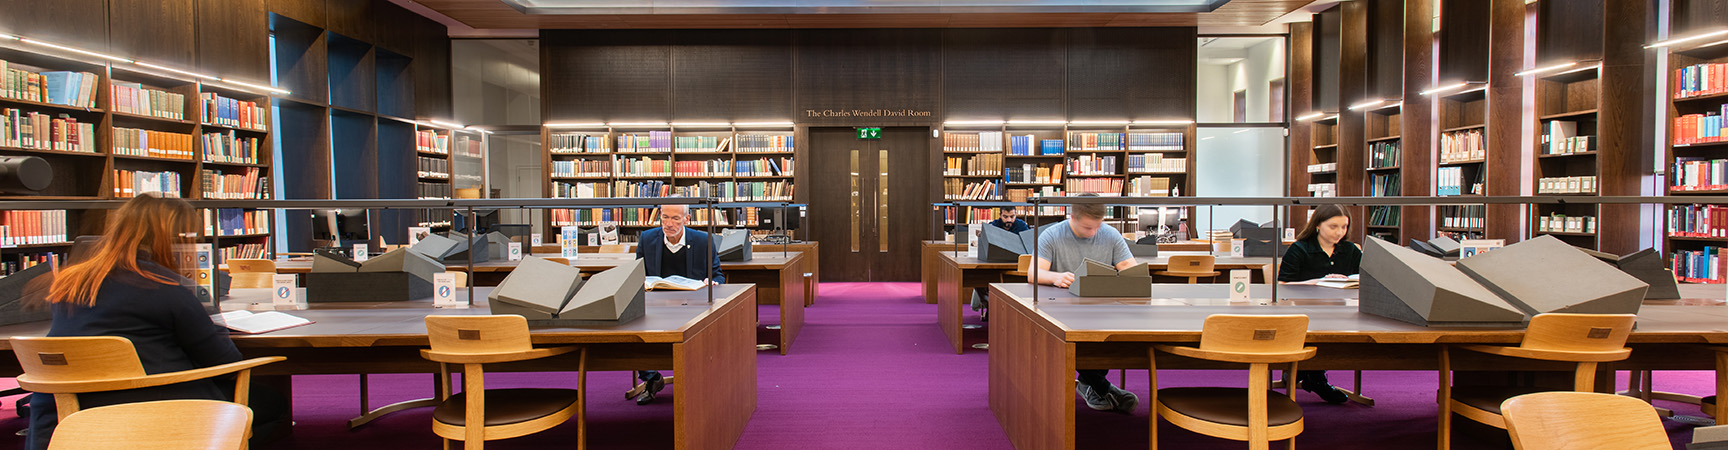 Two large desks with readers either side on a purple carpet